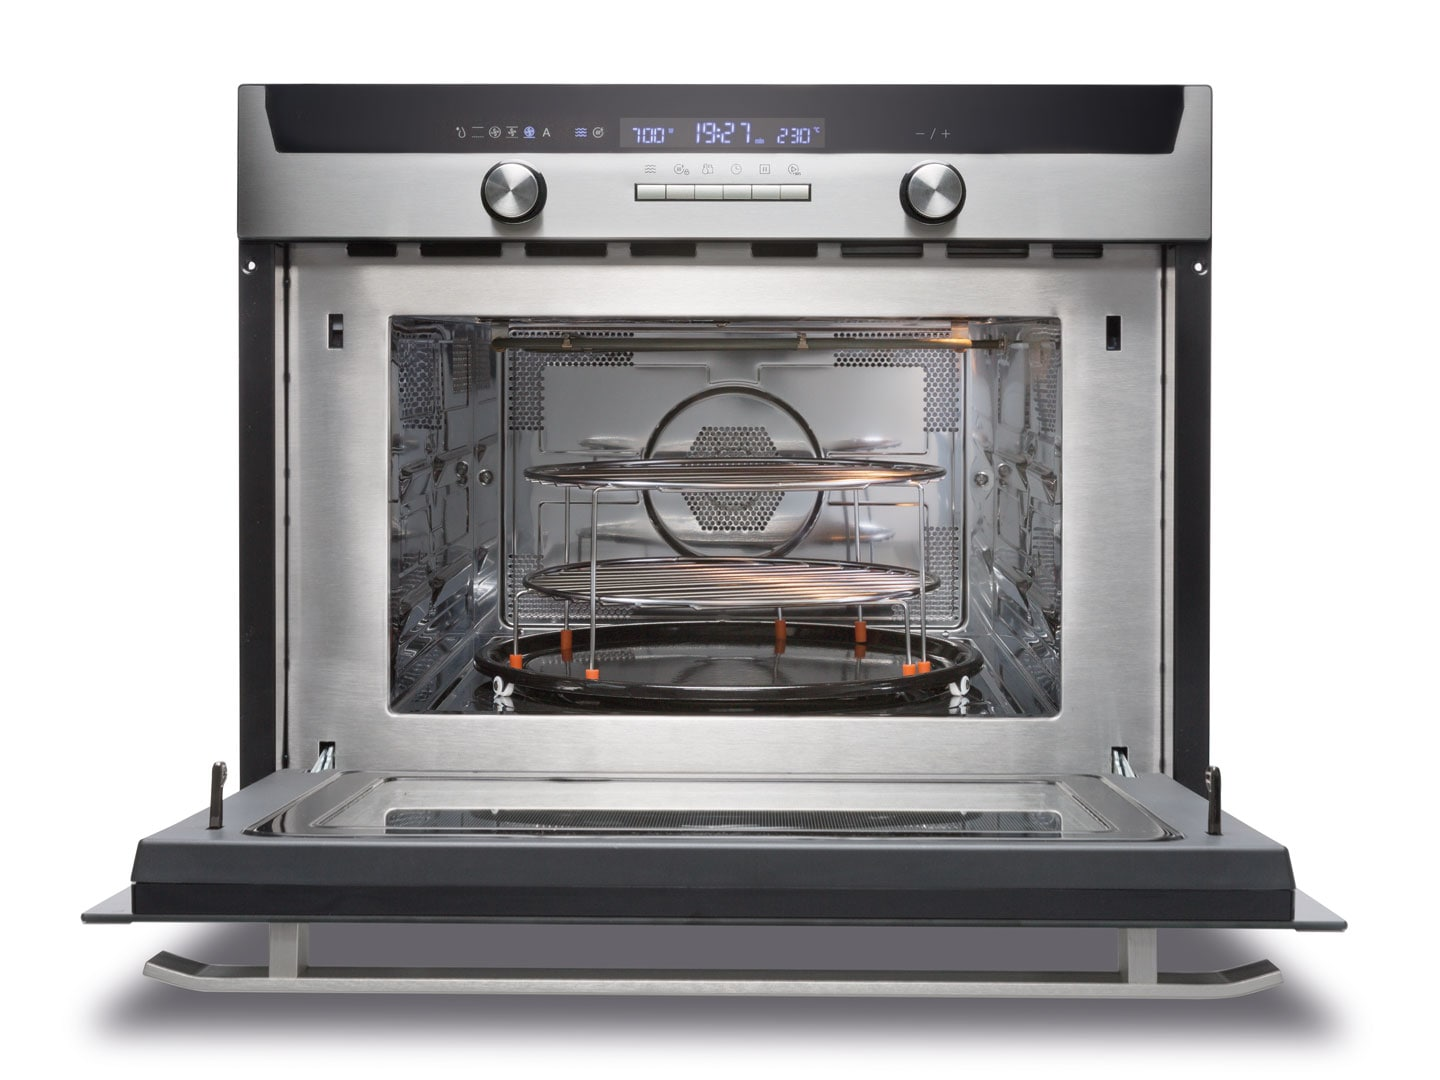 60cm compact speed oven with microwave